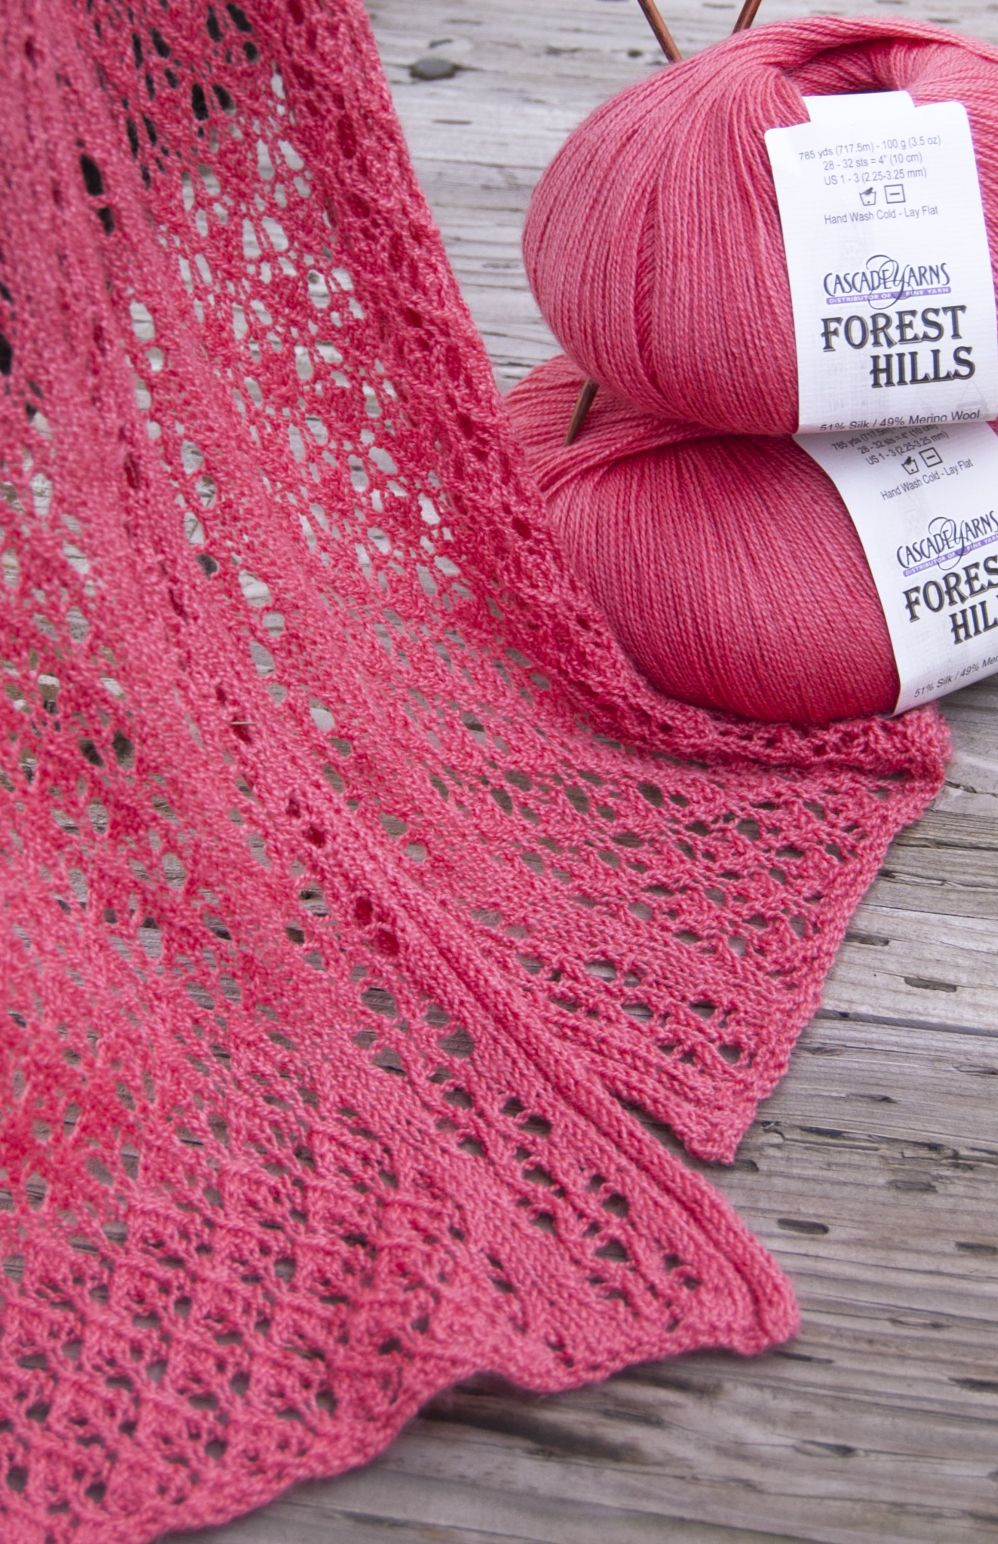 Free pattern highlight cascade yarns forest hills lace scarf free pattern highlight cascade yarns forest hills lace scarf knit with just one ball of bankloansurffo Gallery